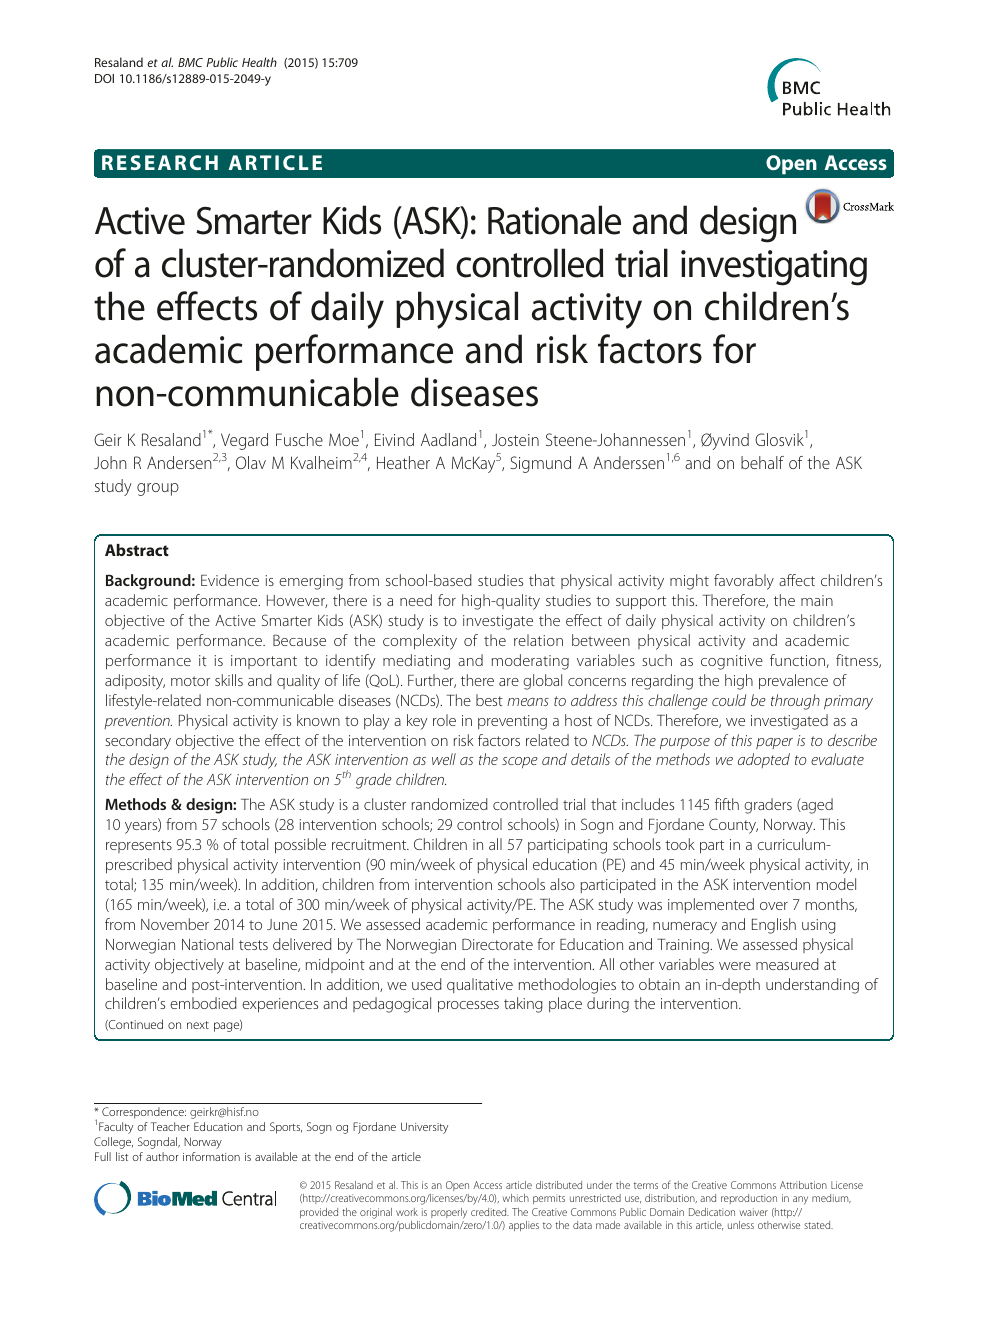 Active Smarter Kids (ASK): Rationale and design of a cluster